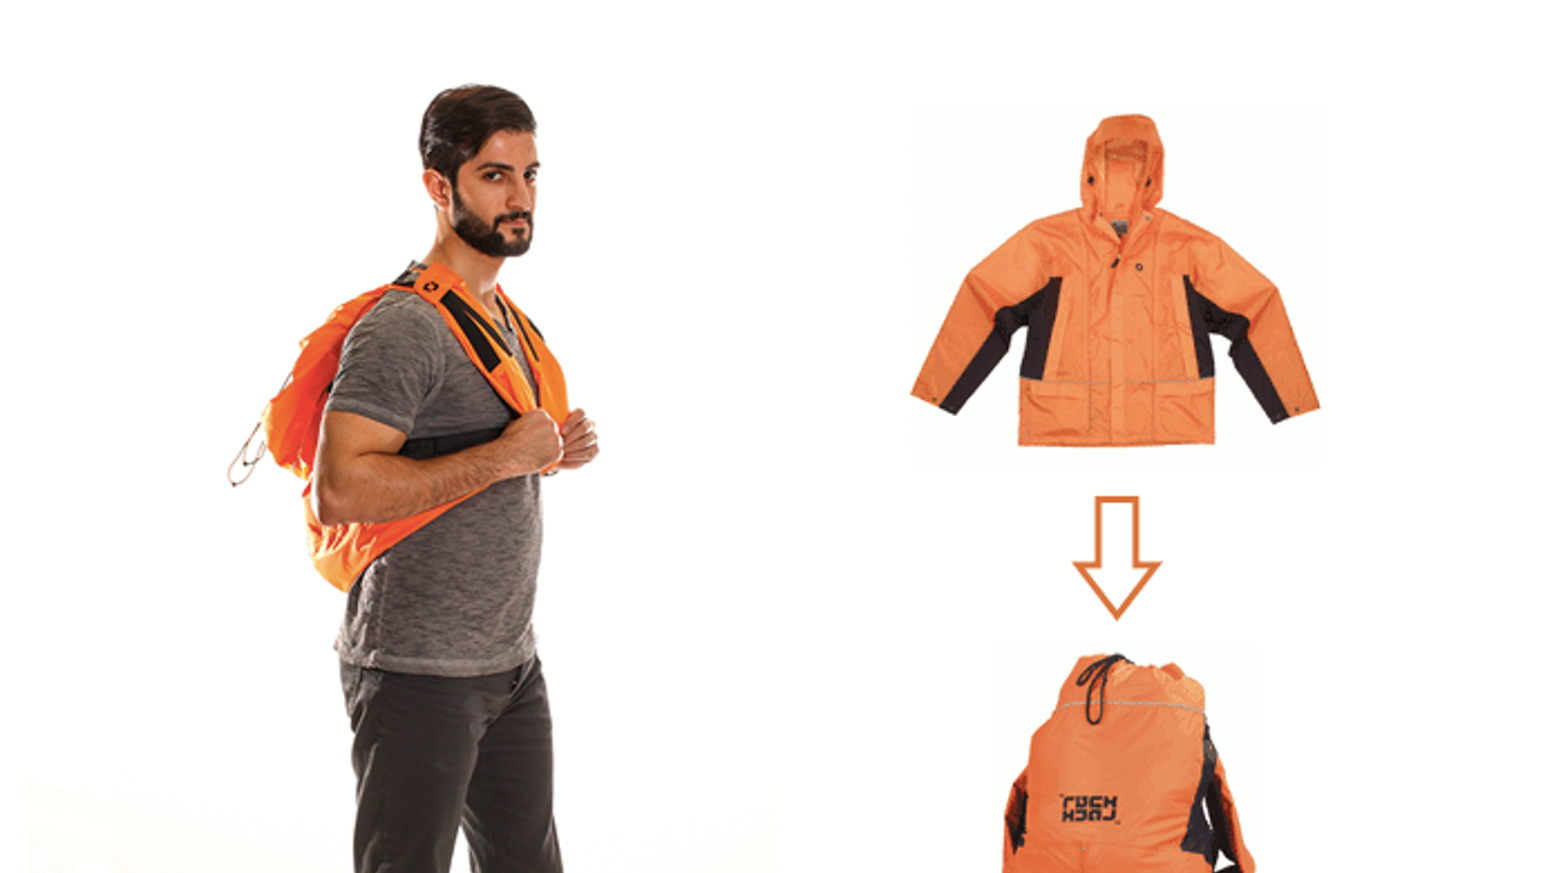 Ruckjack changes from a jacket to a backpack with 3 steps.